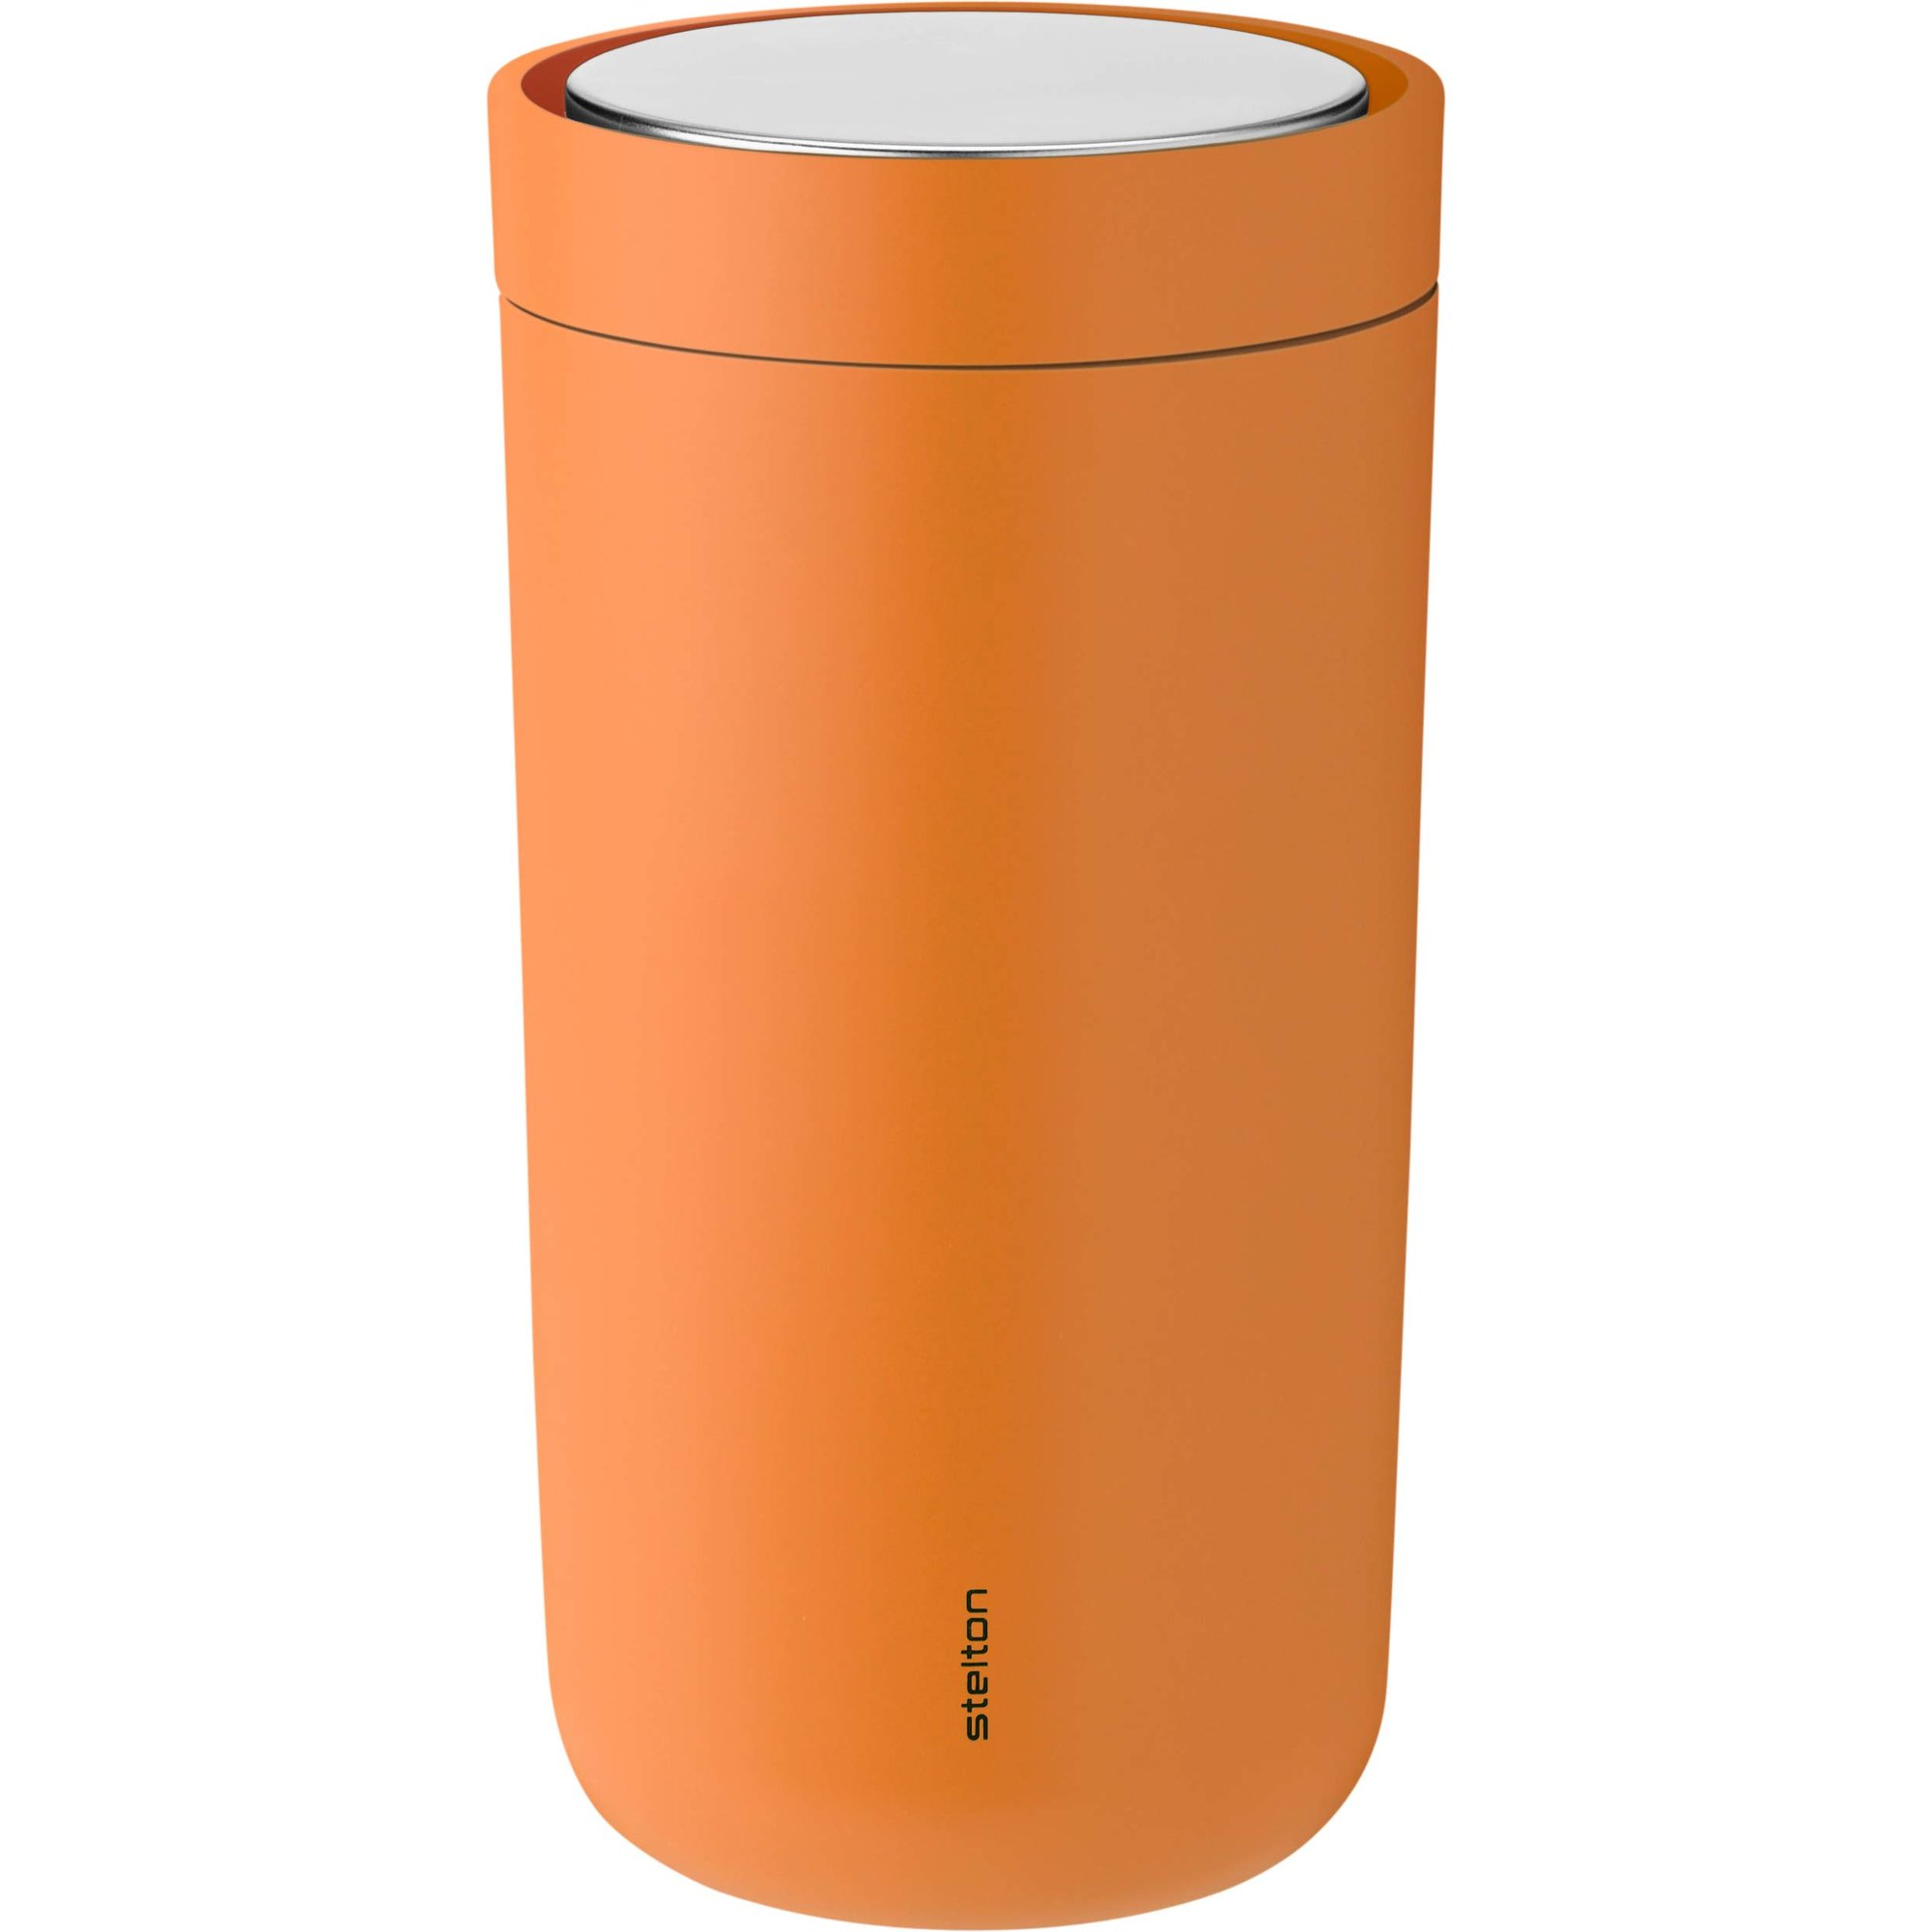 Stelton To Go Click termoskopp 02 liter pastell orange